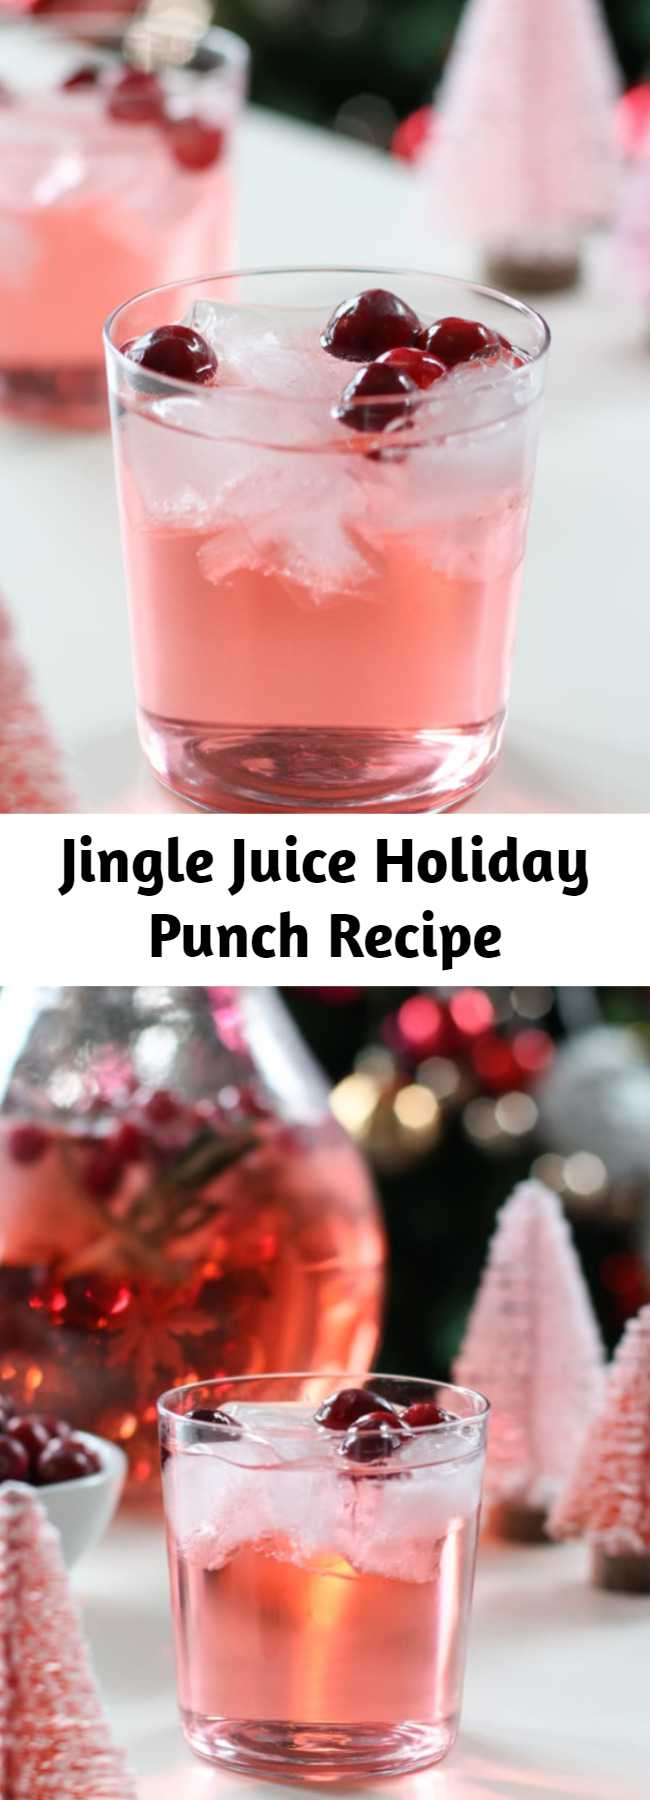 Jingle Juice Holiday Punch Recipe - This Jingle Juice Holiday Punch recipe is simple, delicious, and beautiful! You only need three ingredients to craft this delicious holiday punch recipe everyone will love!